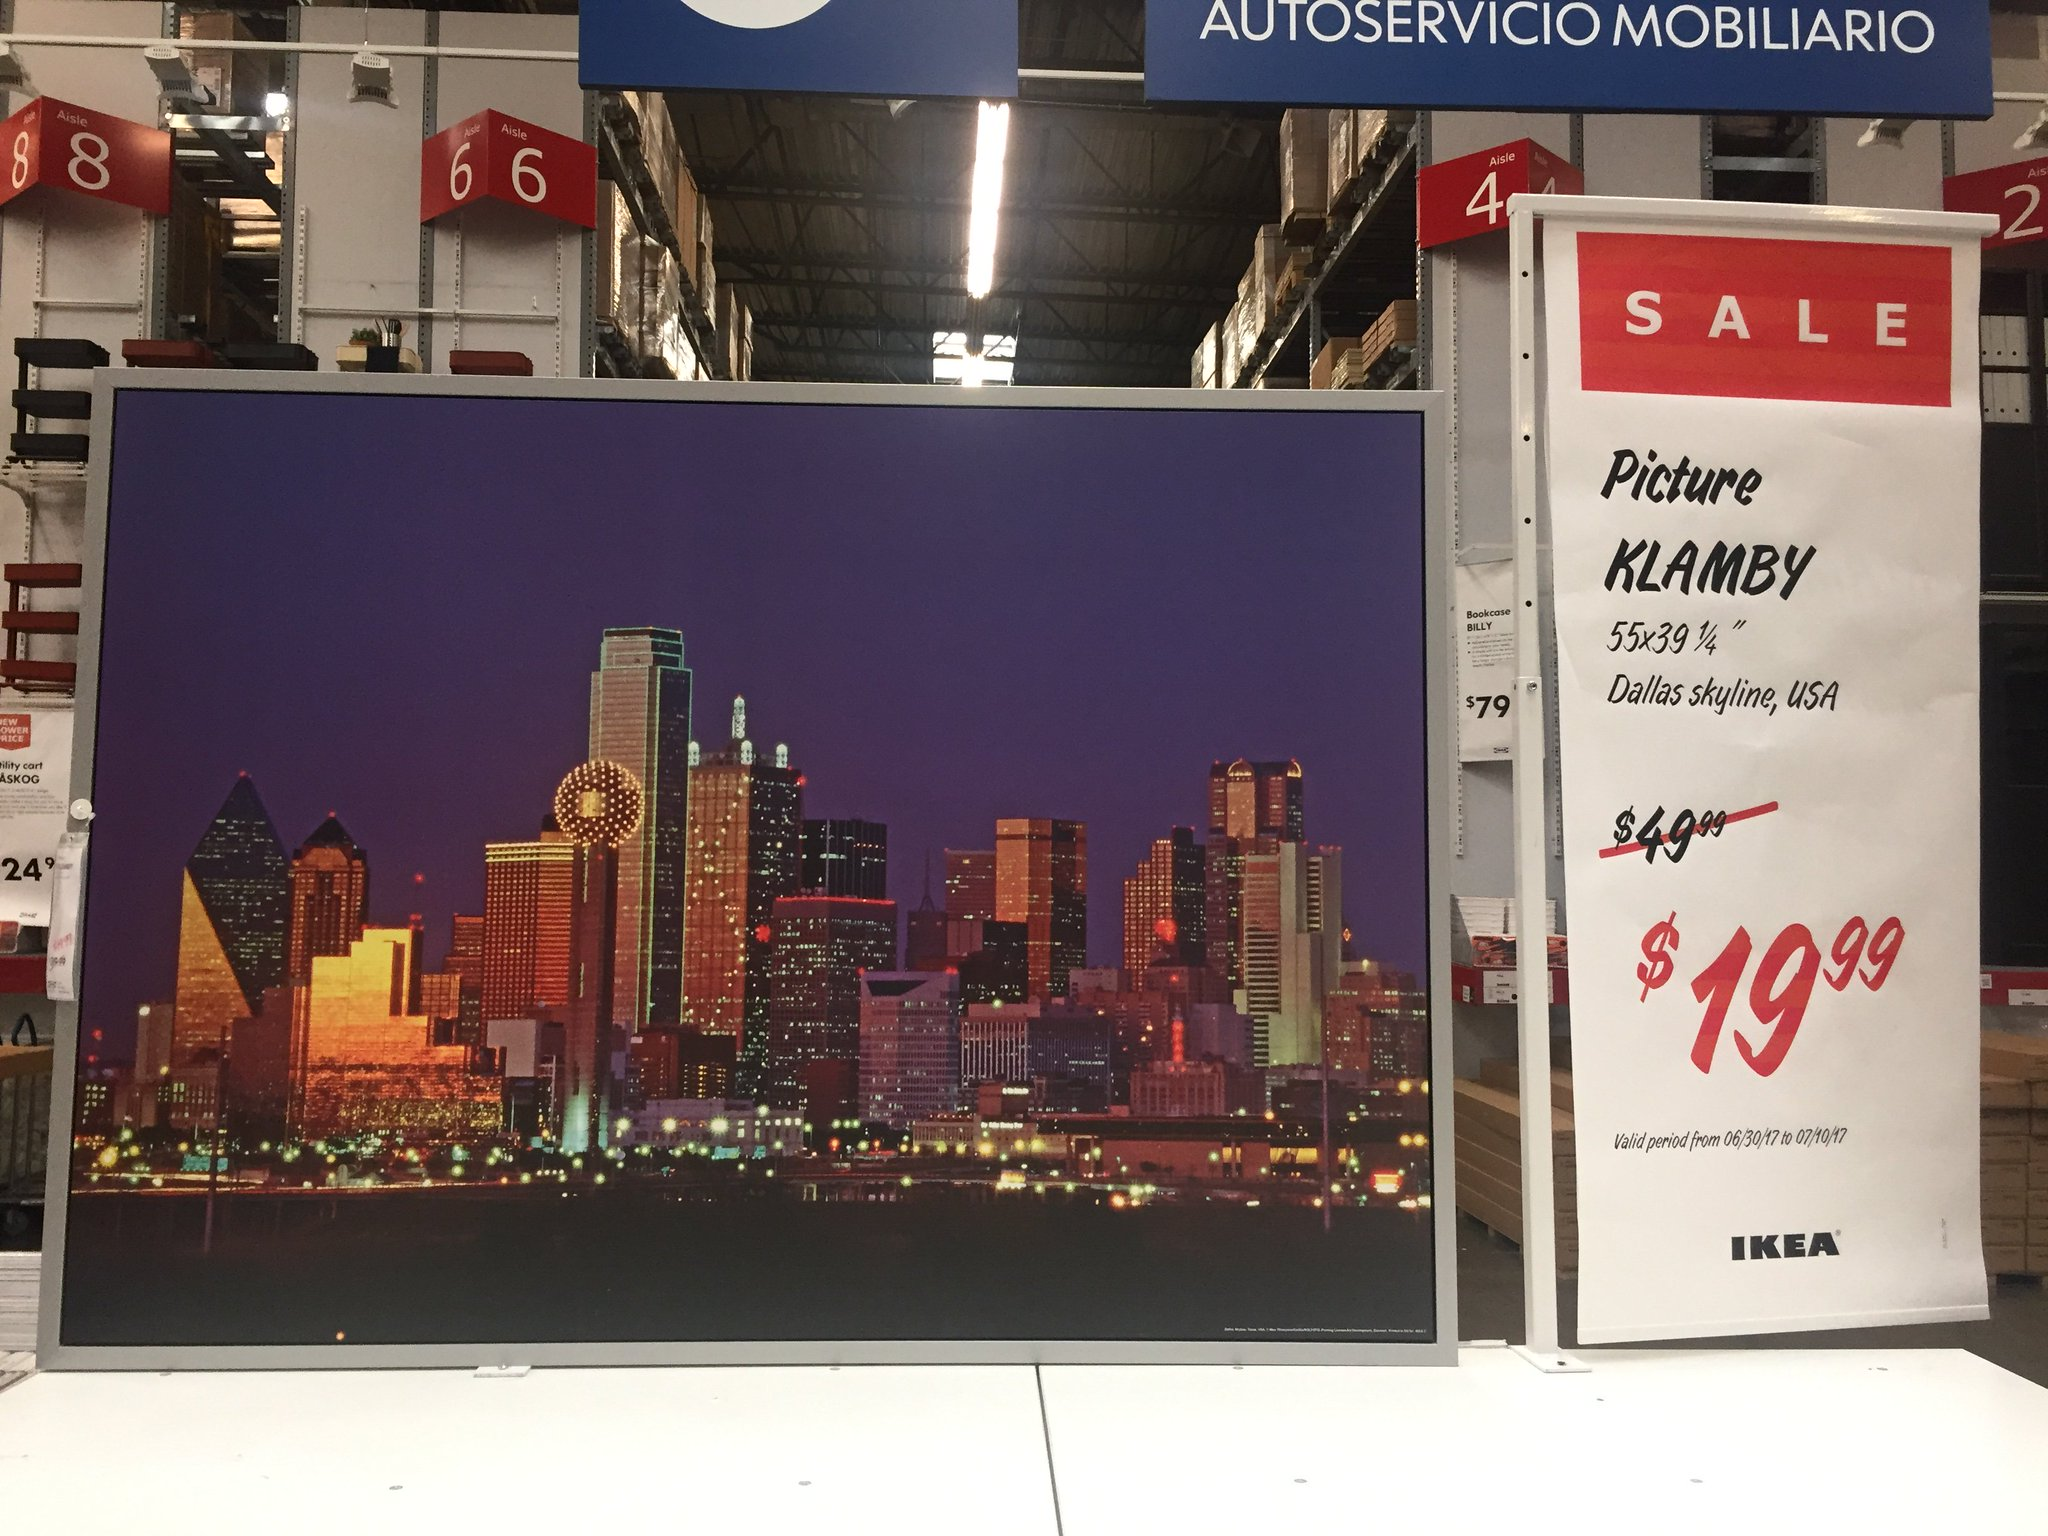 Ikea Frisco On Twitter Be Dallas Proud Our Klamby Picture Of The Dallassskyline Is Only 19 99 © inter ikea systems b.v. ikea frisco on twitter be dallas